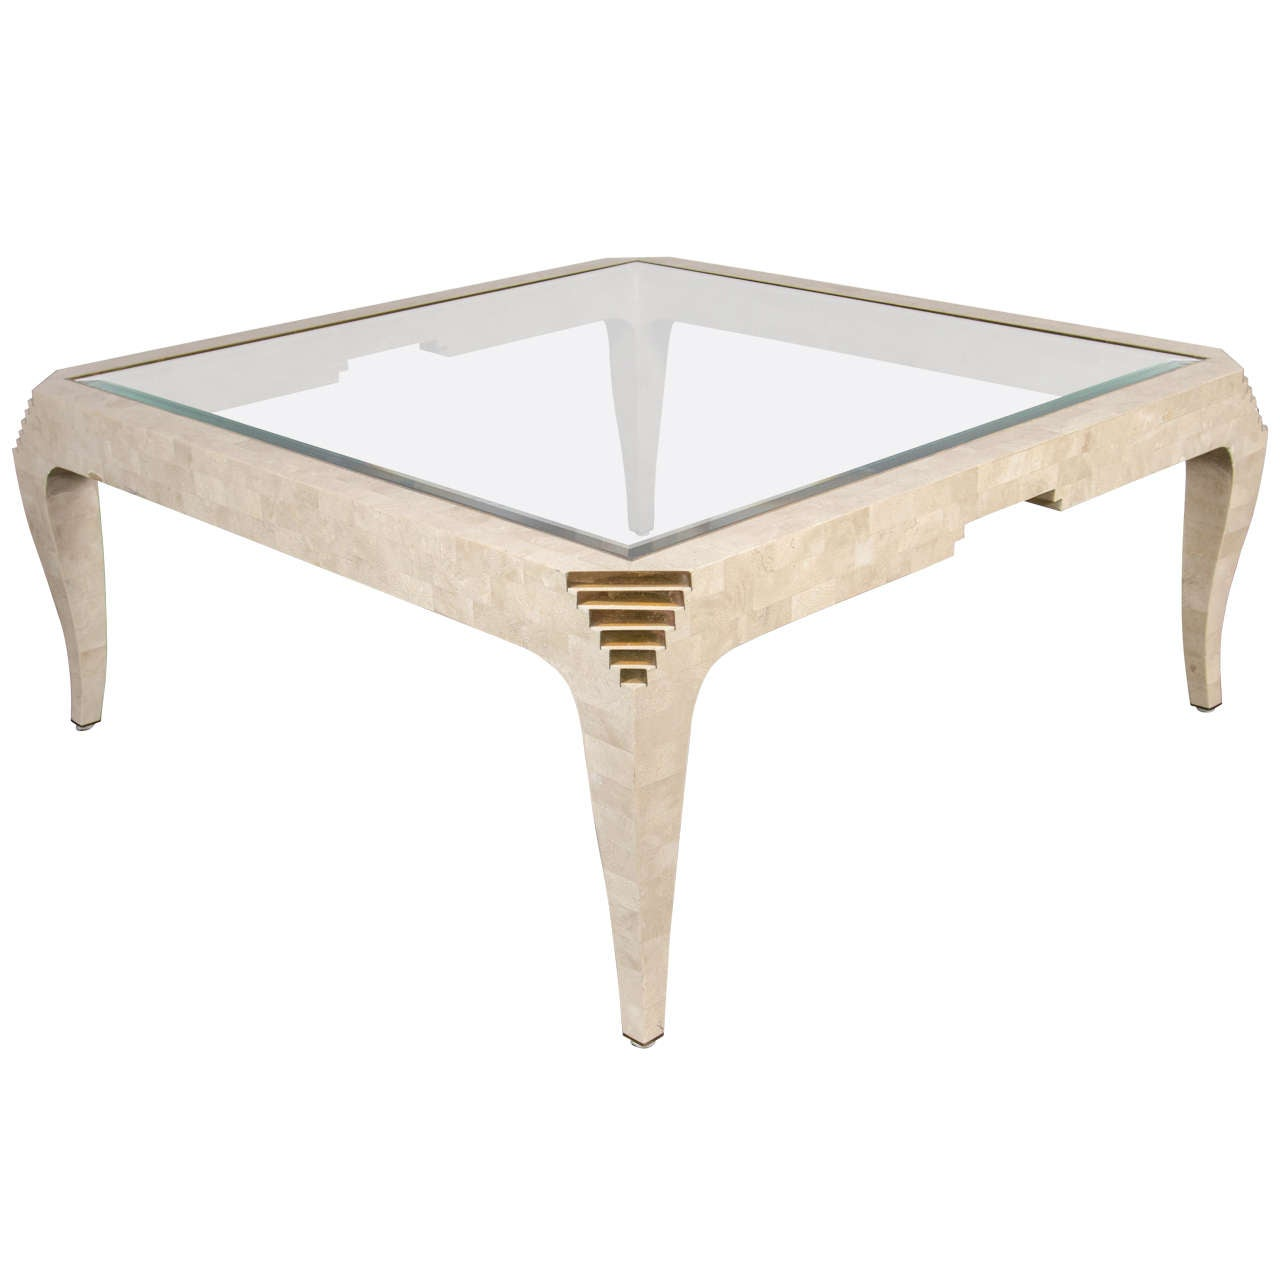 Art deco style tessellated fossil stone cocktail table by for Fossil coffee table